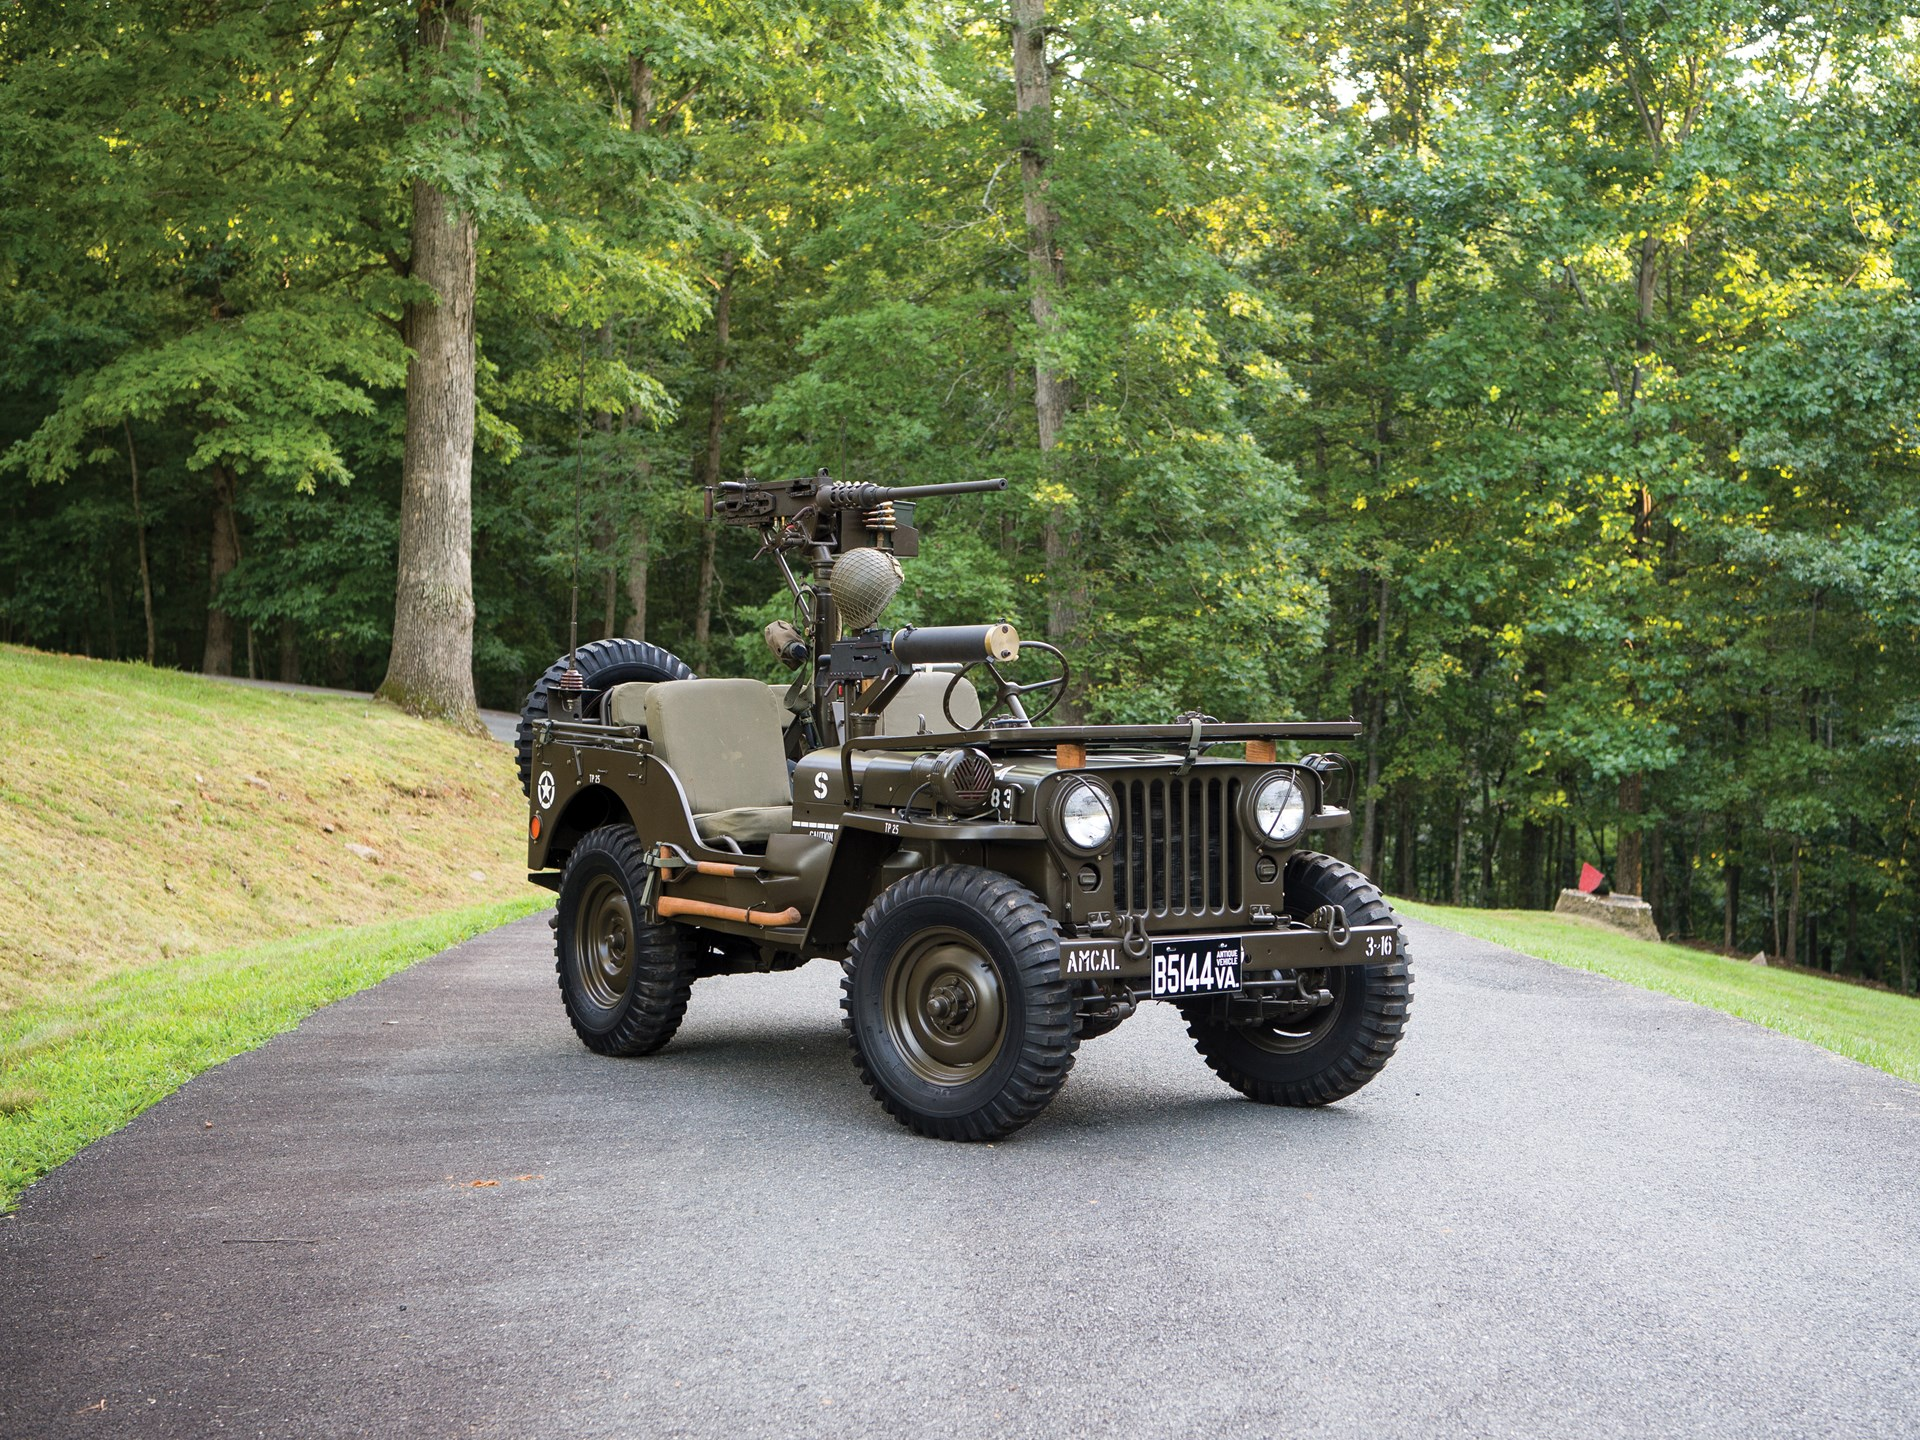 M38 L Head Engine Schematic Wiring Diagrams Source · rm sotheby s 1951 s m38  jeep hershey 2016 rh rmsothebys com 1952 s jeep m38